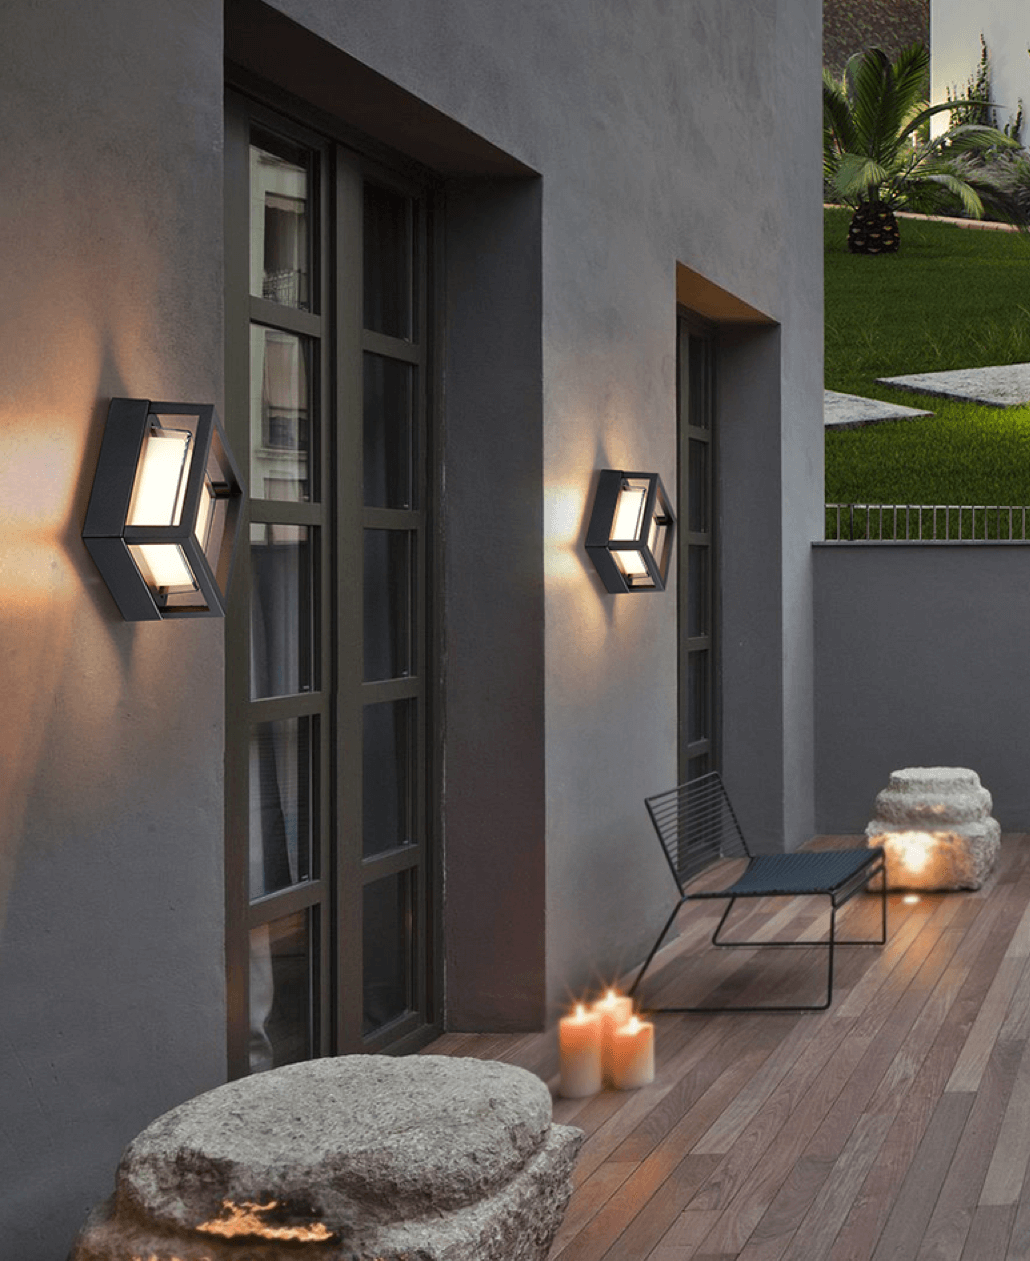 modern square porch led facade wall light footer image 1